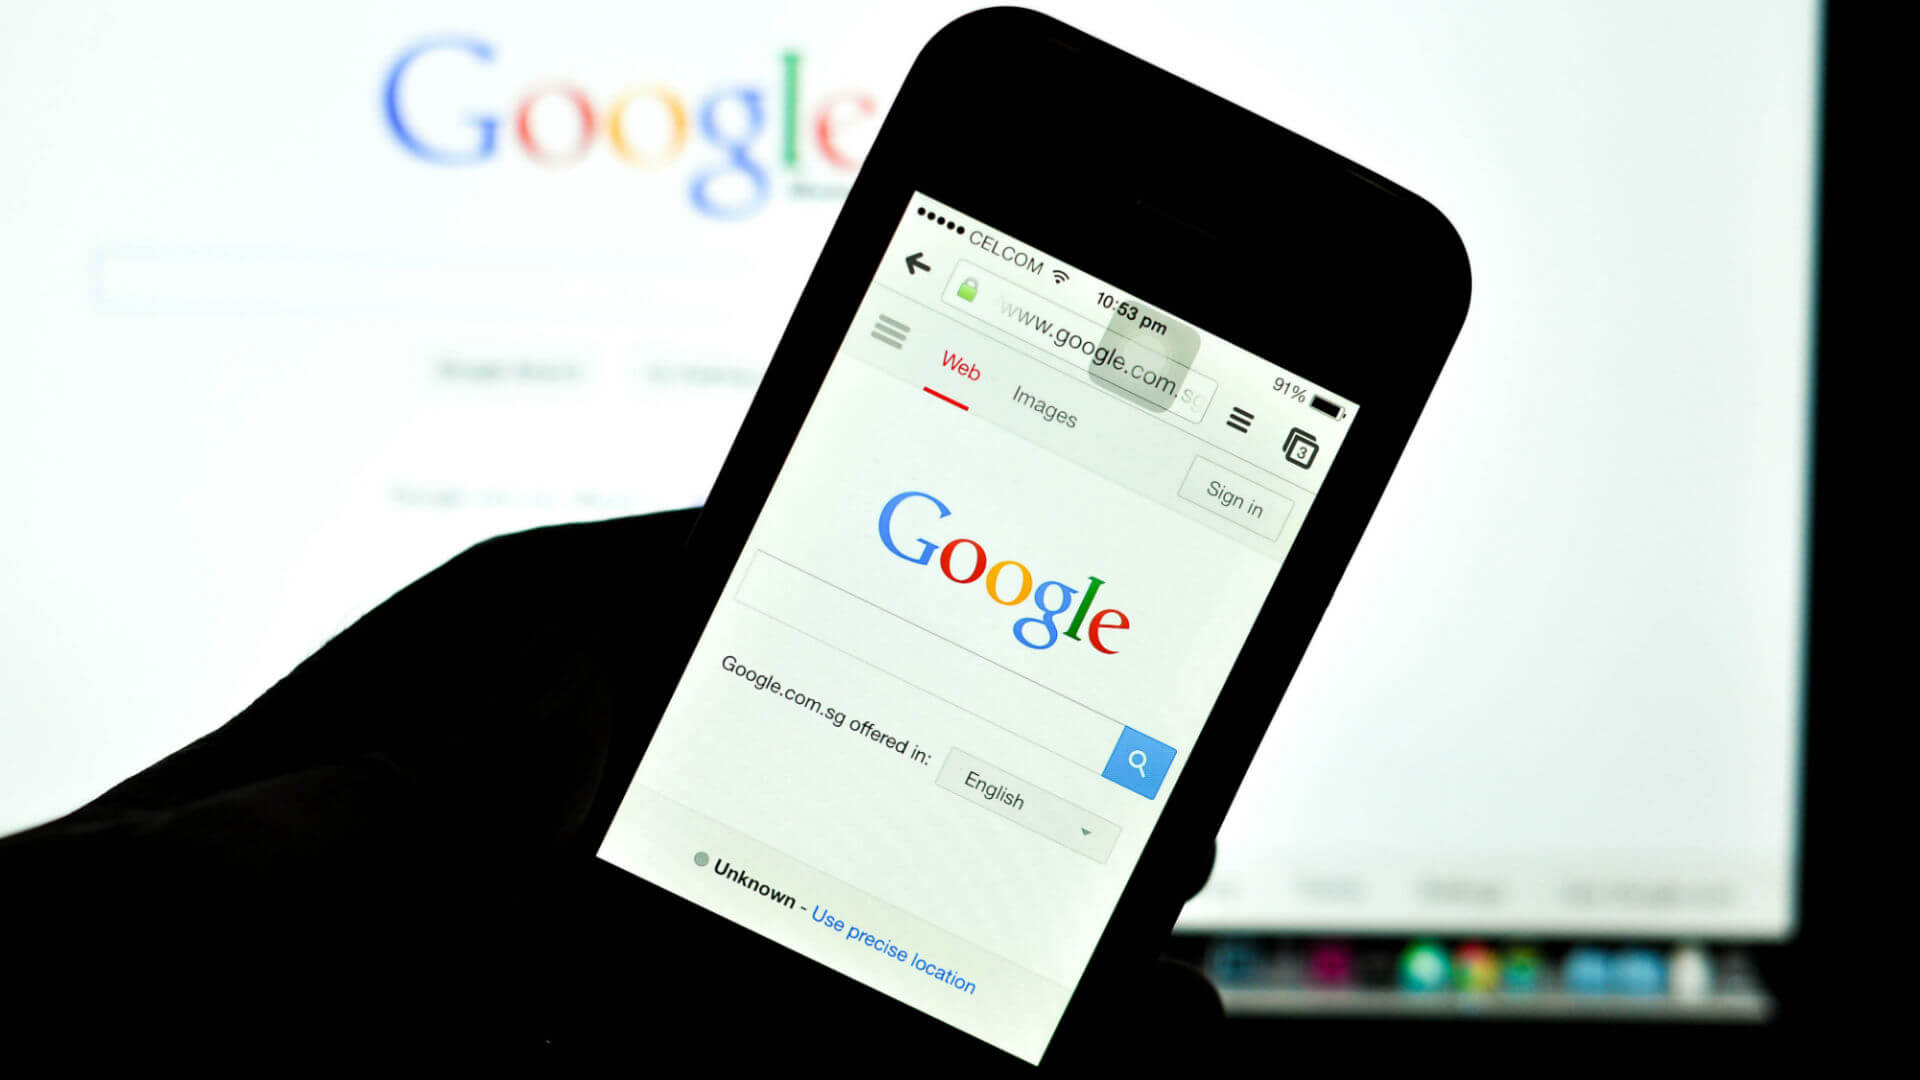 Google tests 'more results' mobile search interface and new search refinement buttons